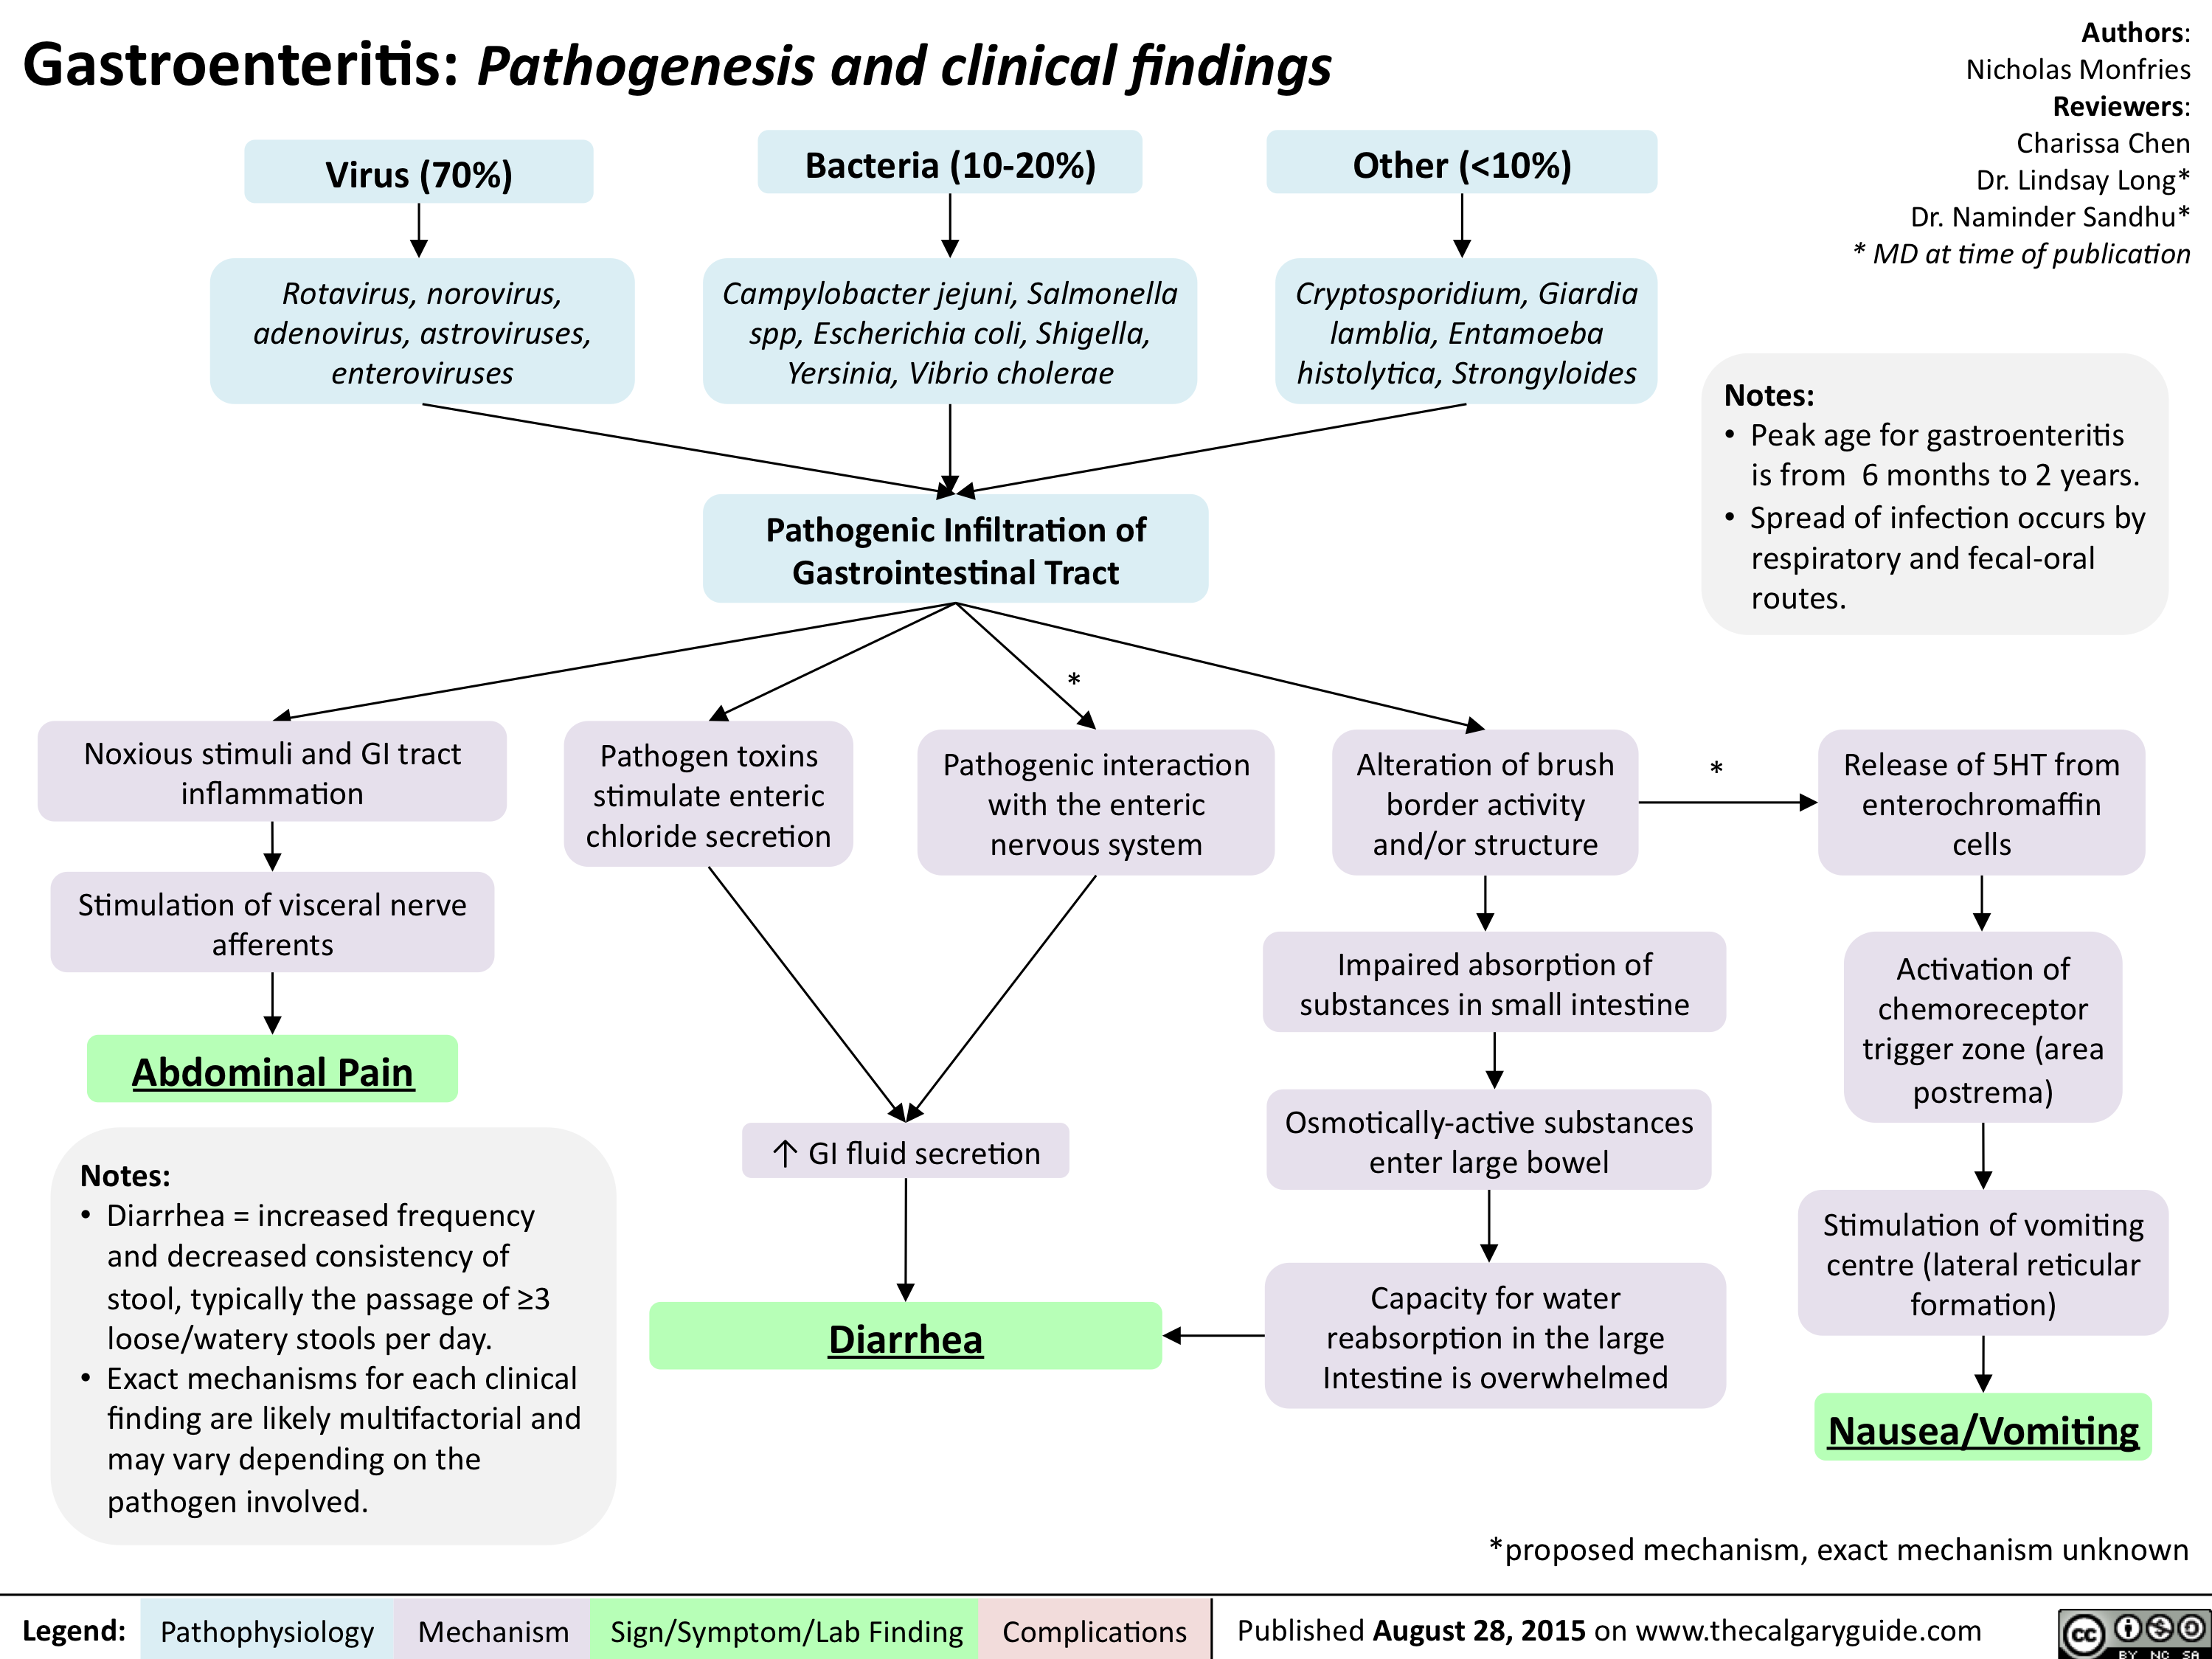 Gastroenteritis-Pathogenesis and clinical findings